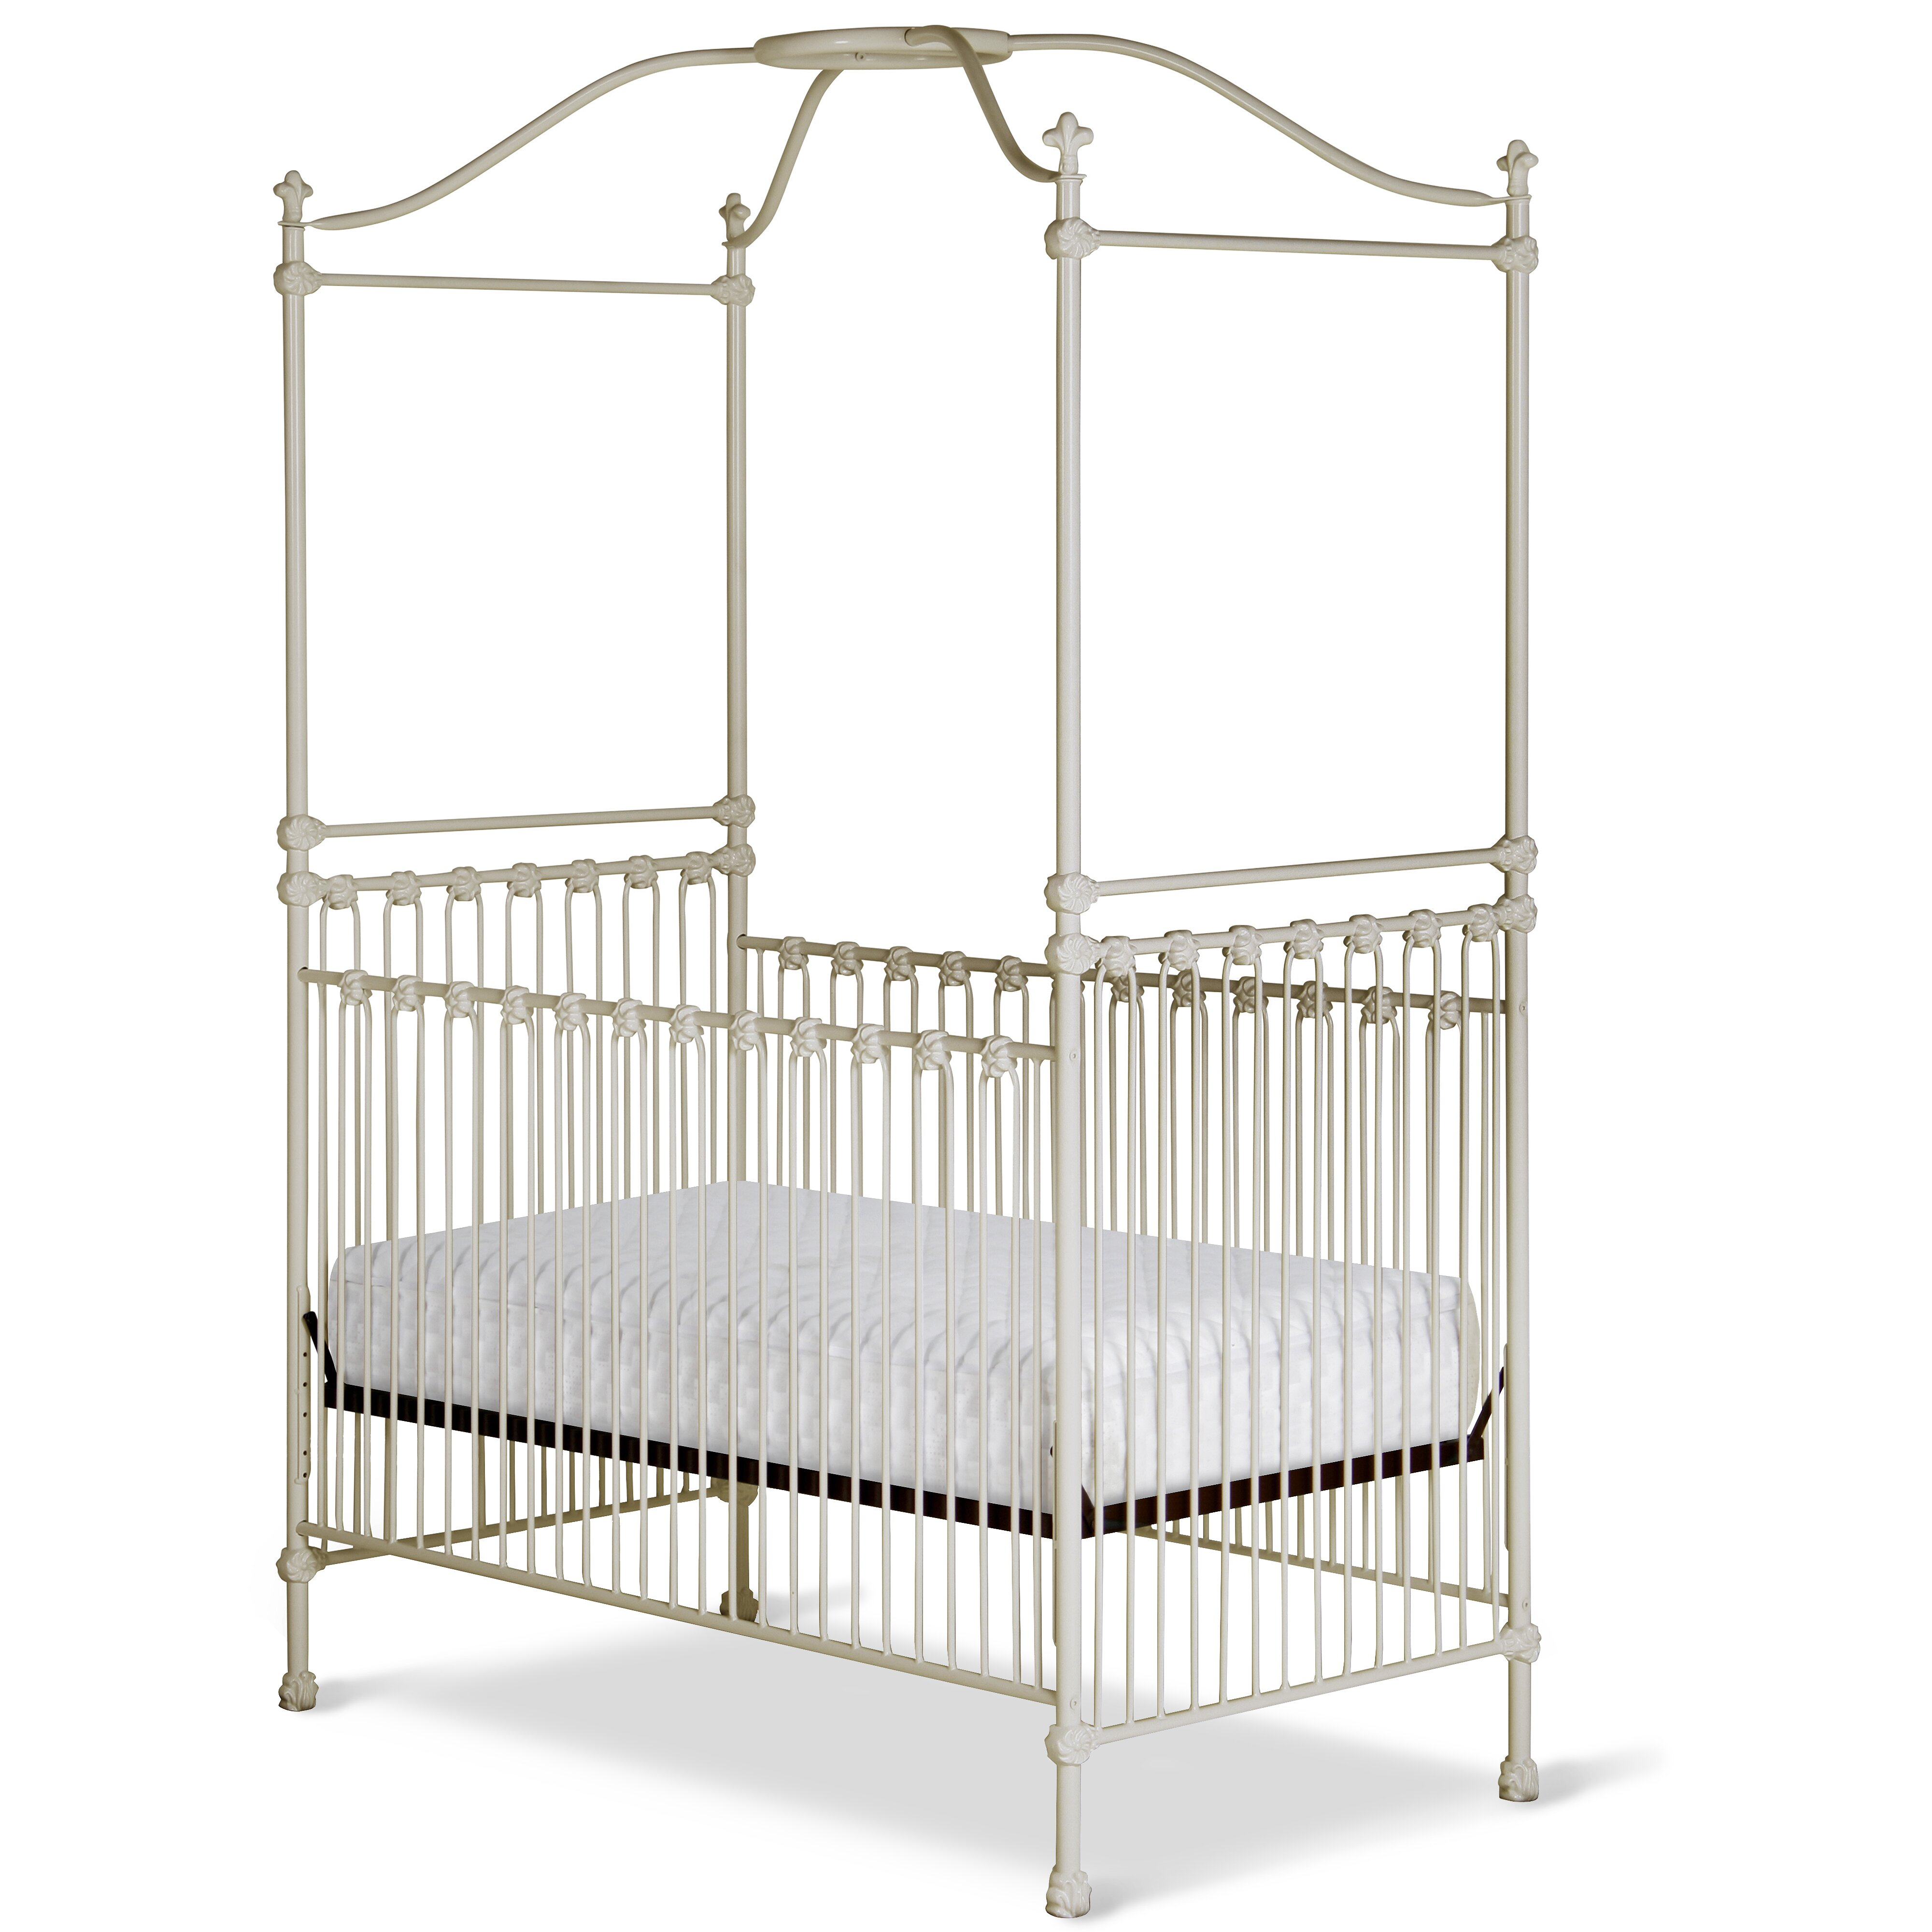 Ellery round crib for sale - Corsican Stationary Canopy Crib